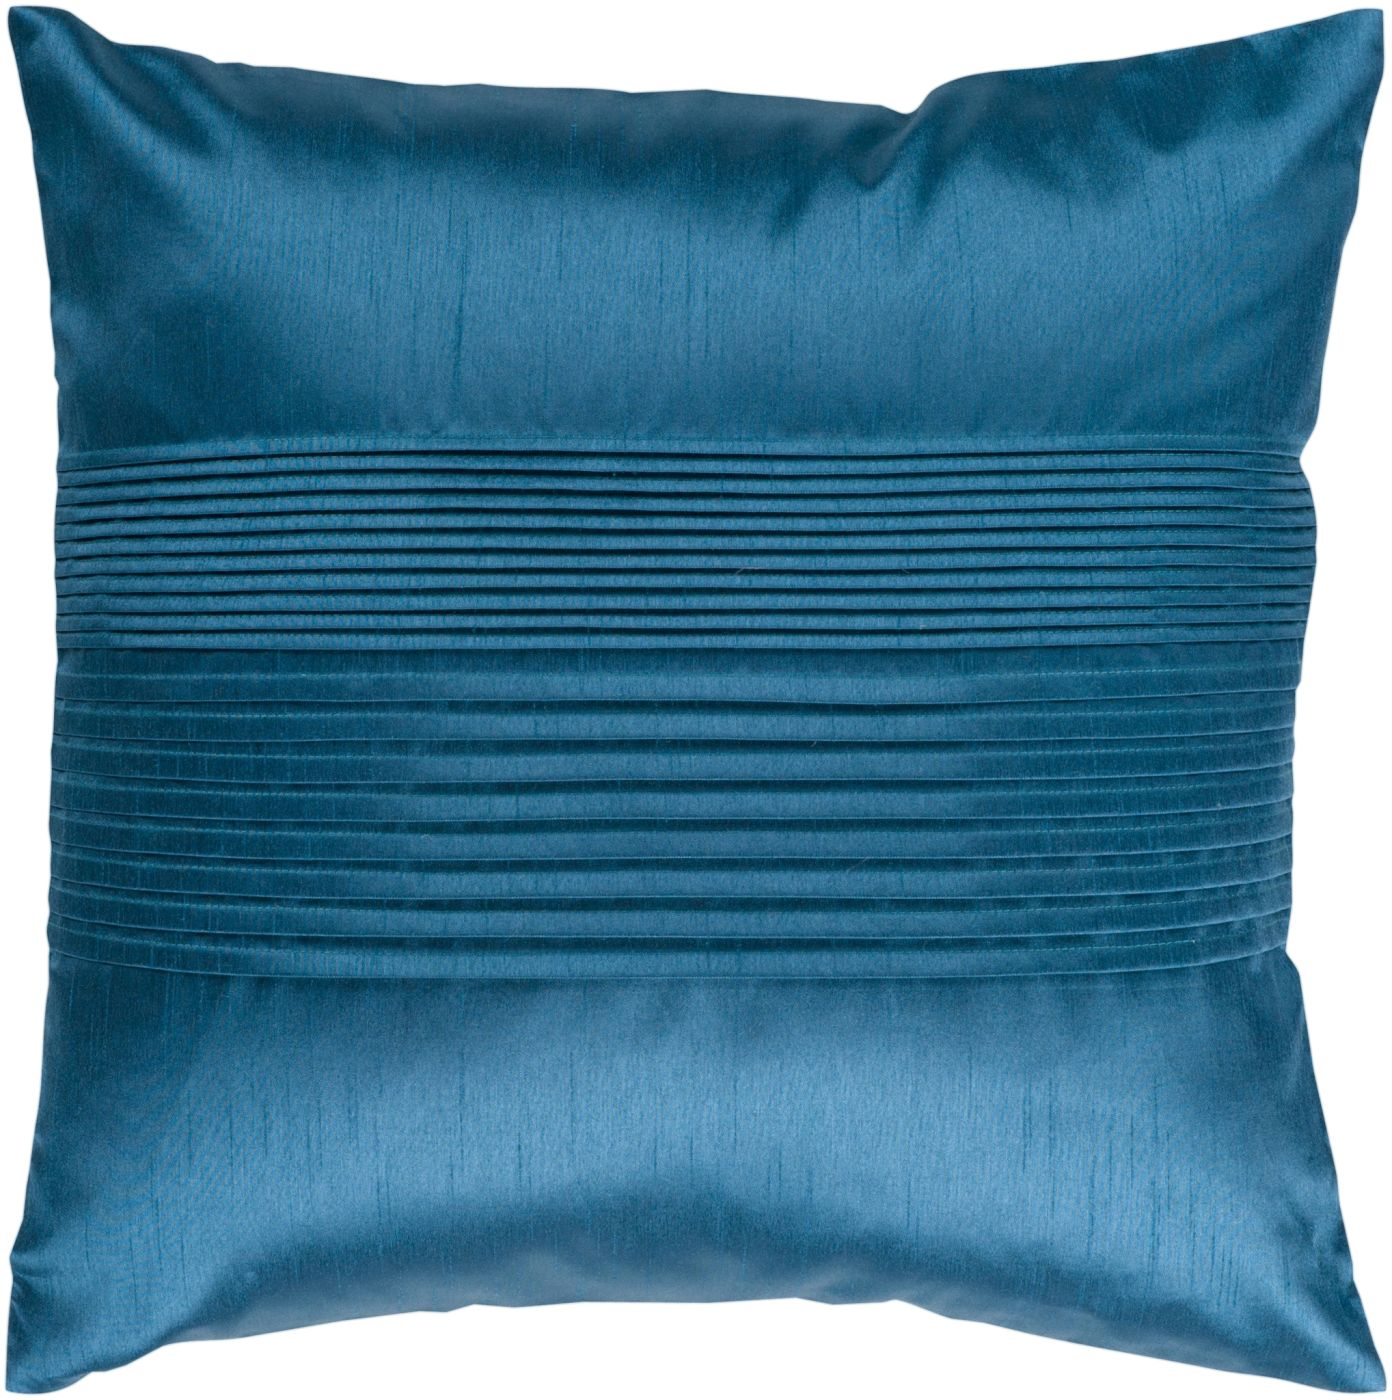 Surya Solid Pleated Throw Pillow Blue HH024-1818P. Only $25.80 at Contemporary Furniture Warehouse.